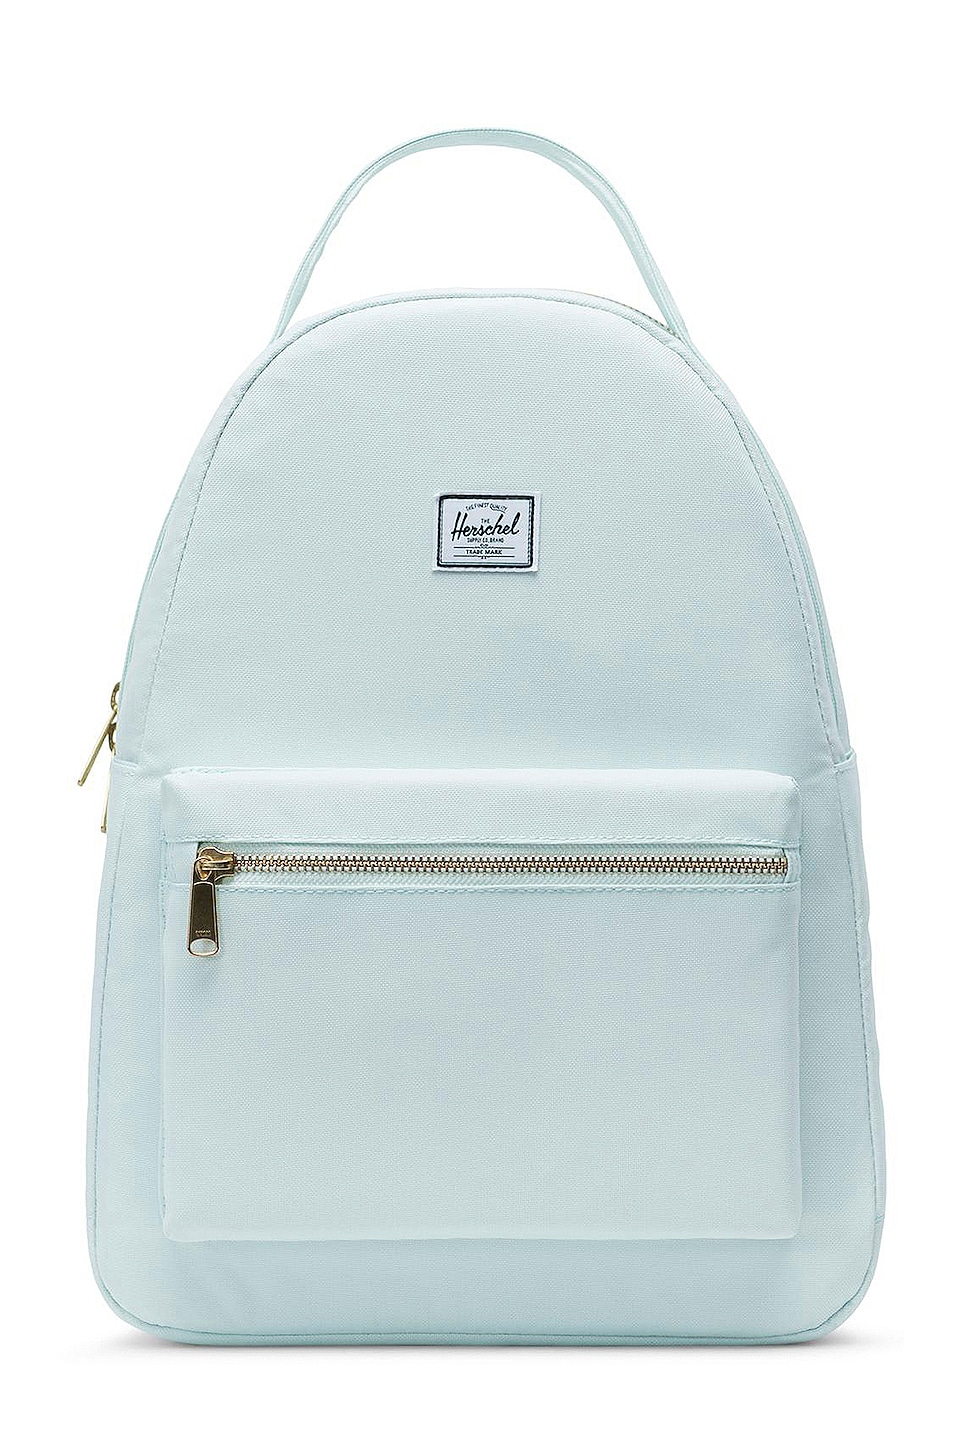 Herschel Supply Co. Nova Mid Volume Backpack in Glacier